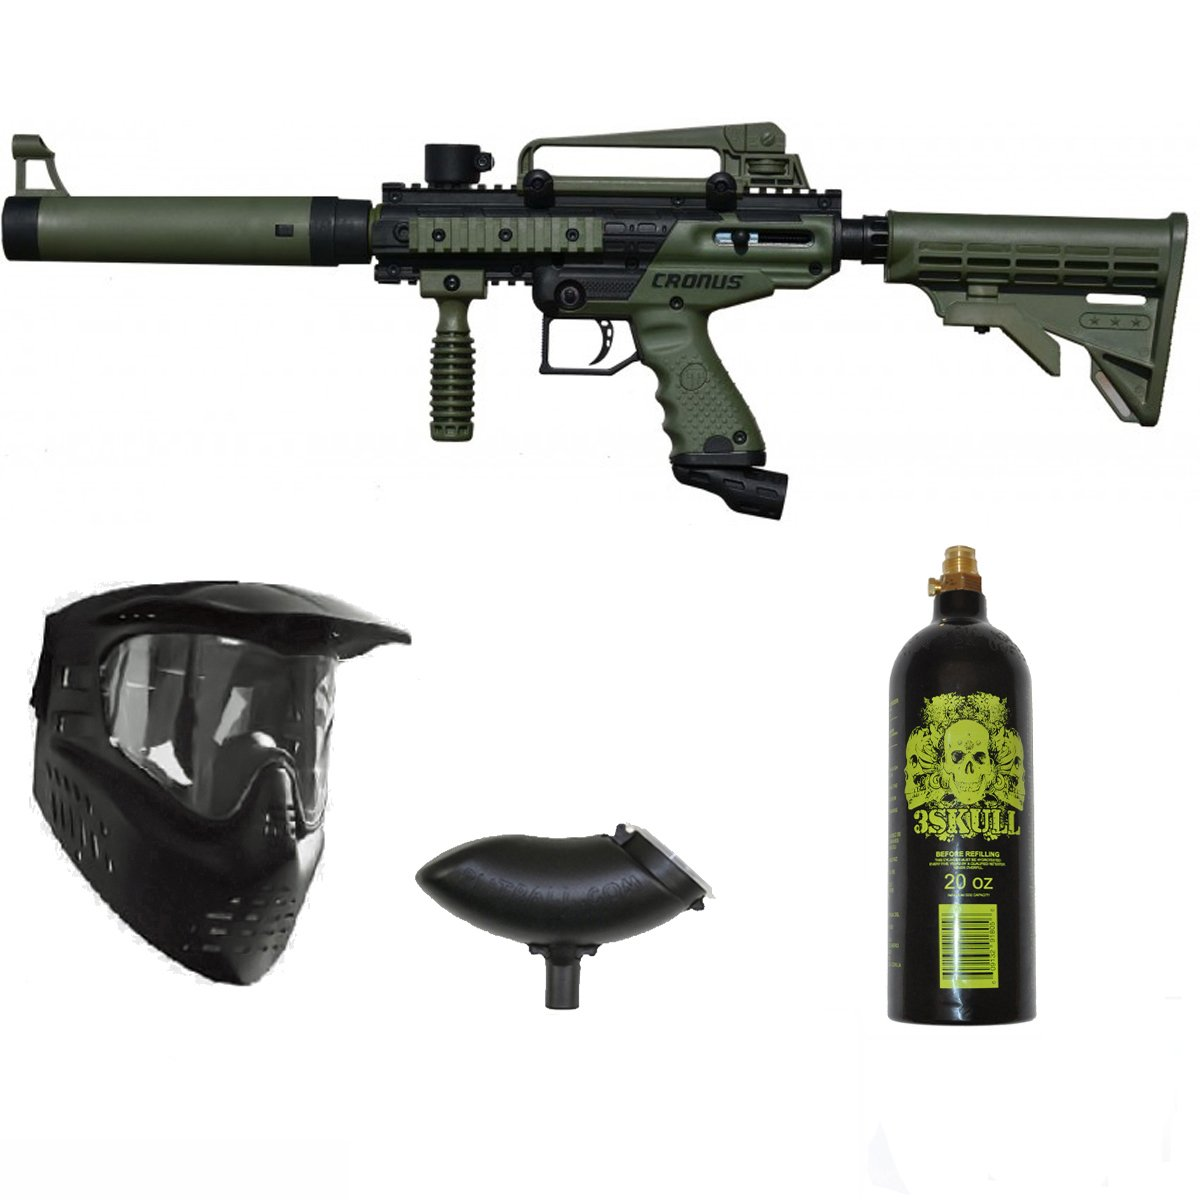 Tippmann Cronus Tactical Paintball Gun 3Skull Package Set - Olive